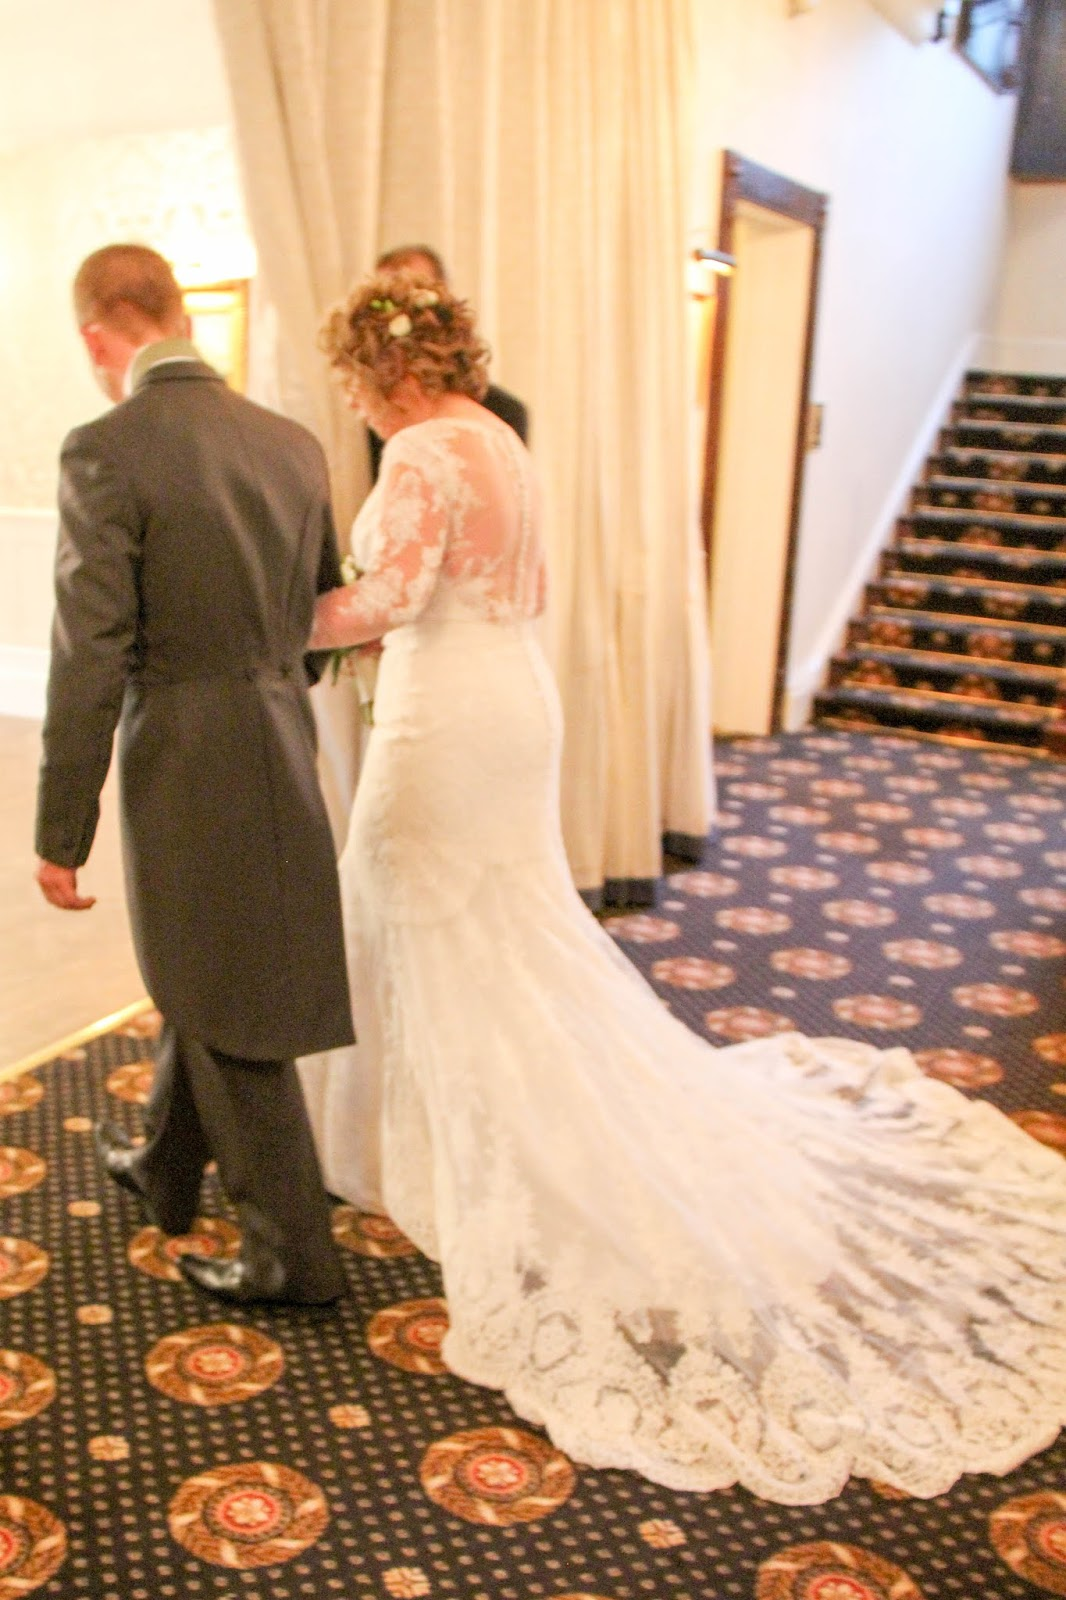 winters dream wedding day for sheila amp john at bartle hall